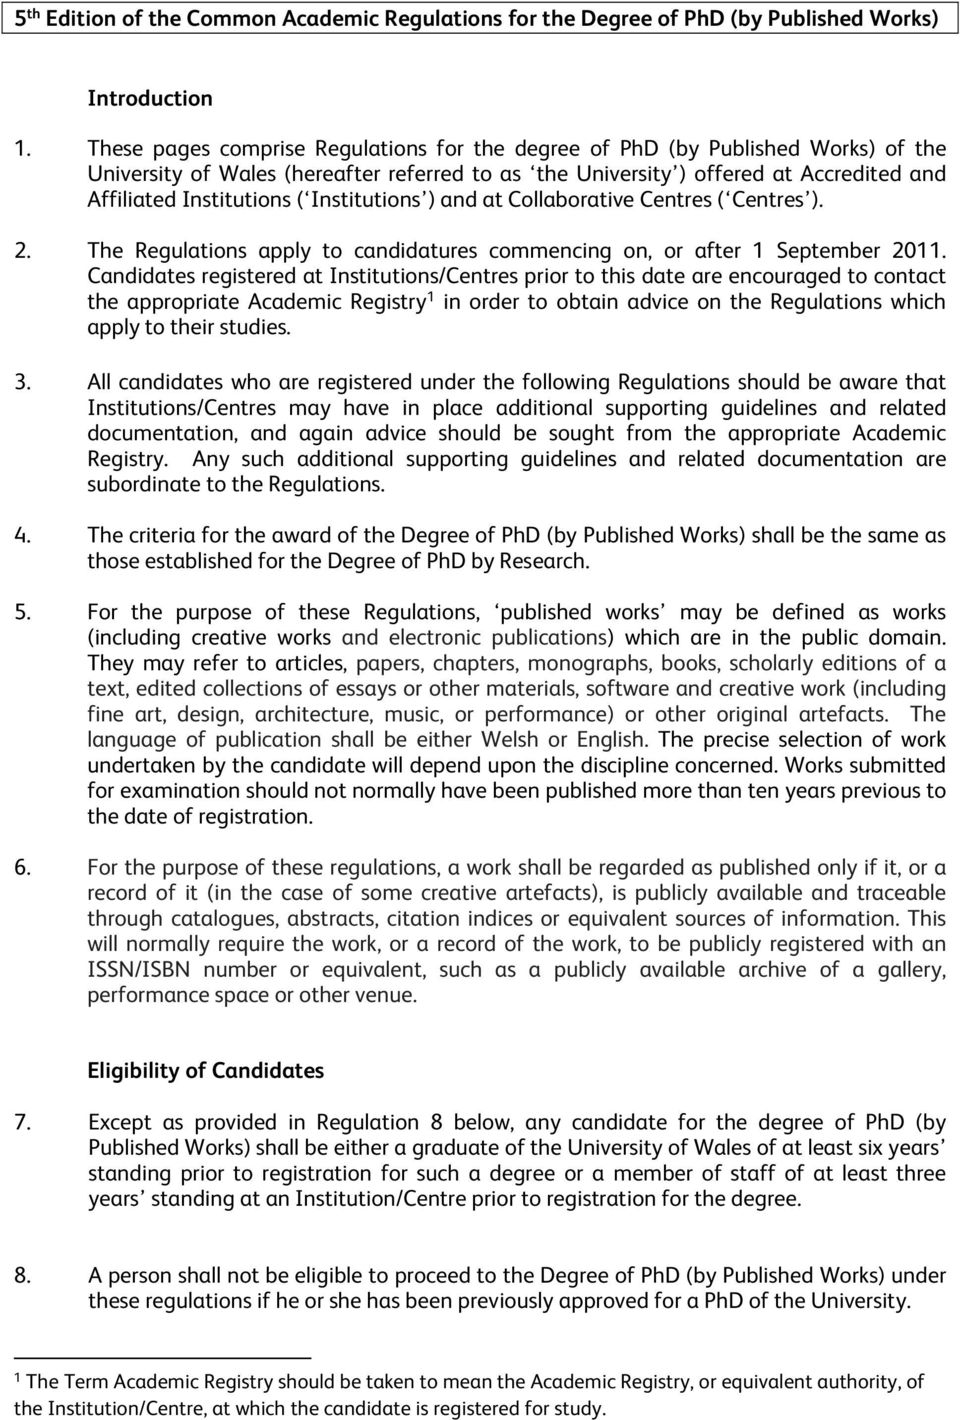 Institutions ) and at Collaborative Centres ( Centres ). 2. The Regulations apply to candidatures commencing on, or after 1 September 2011.